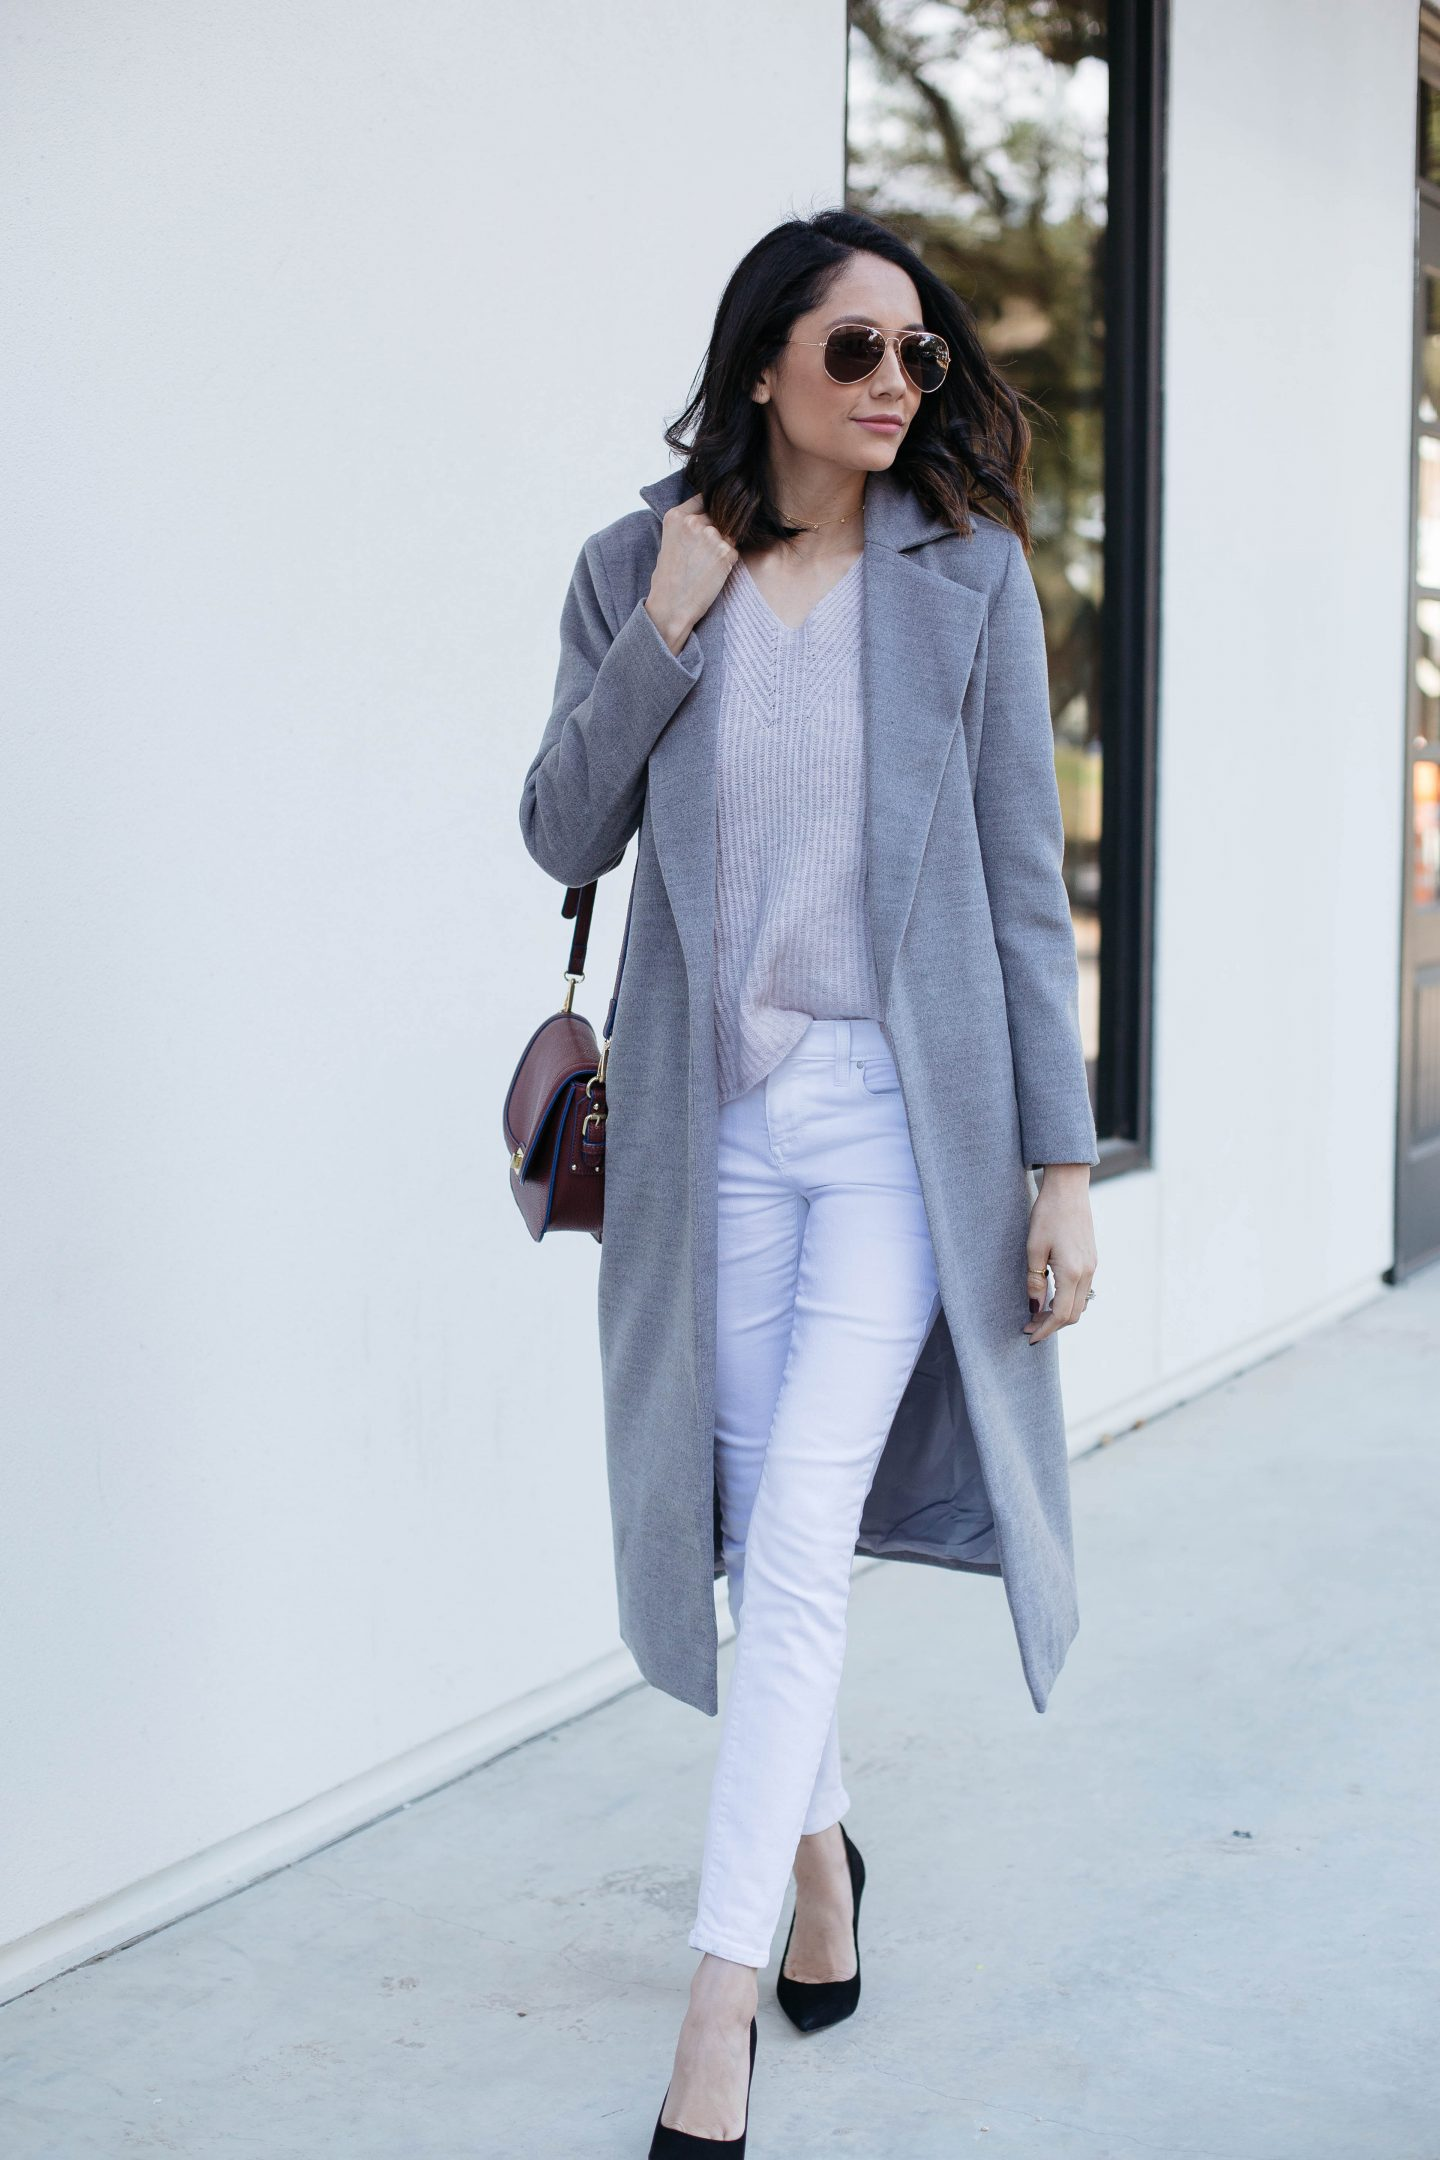 My Favorite Coat This Winter: Cute, Versatile & Under $50